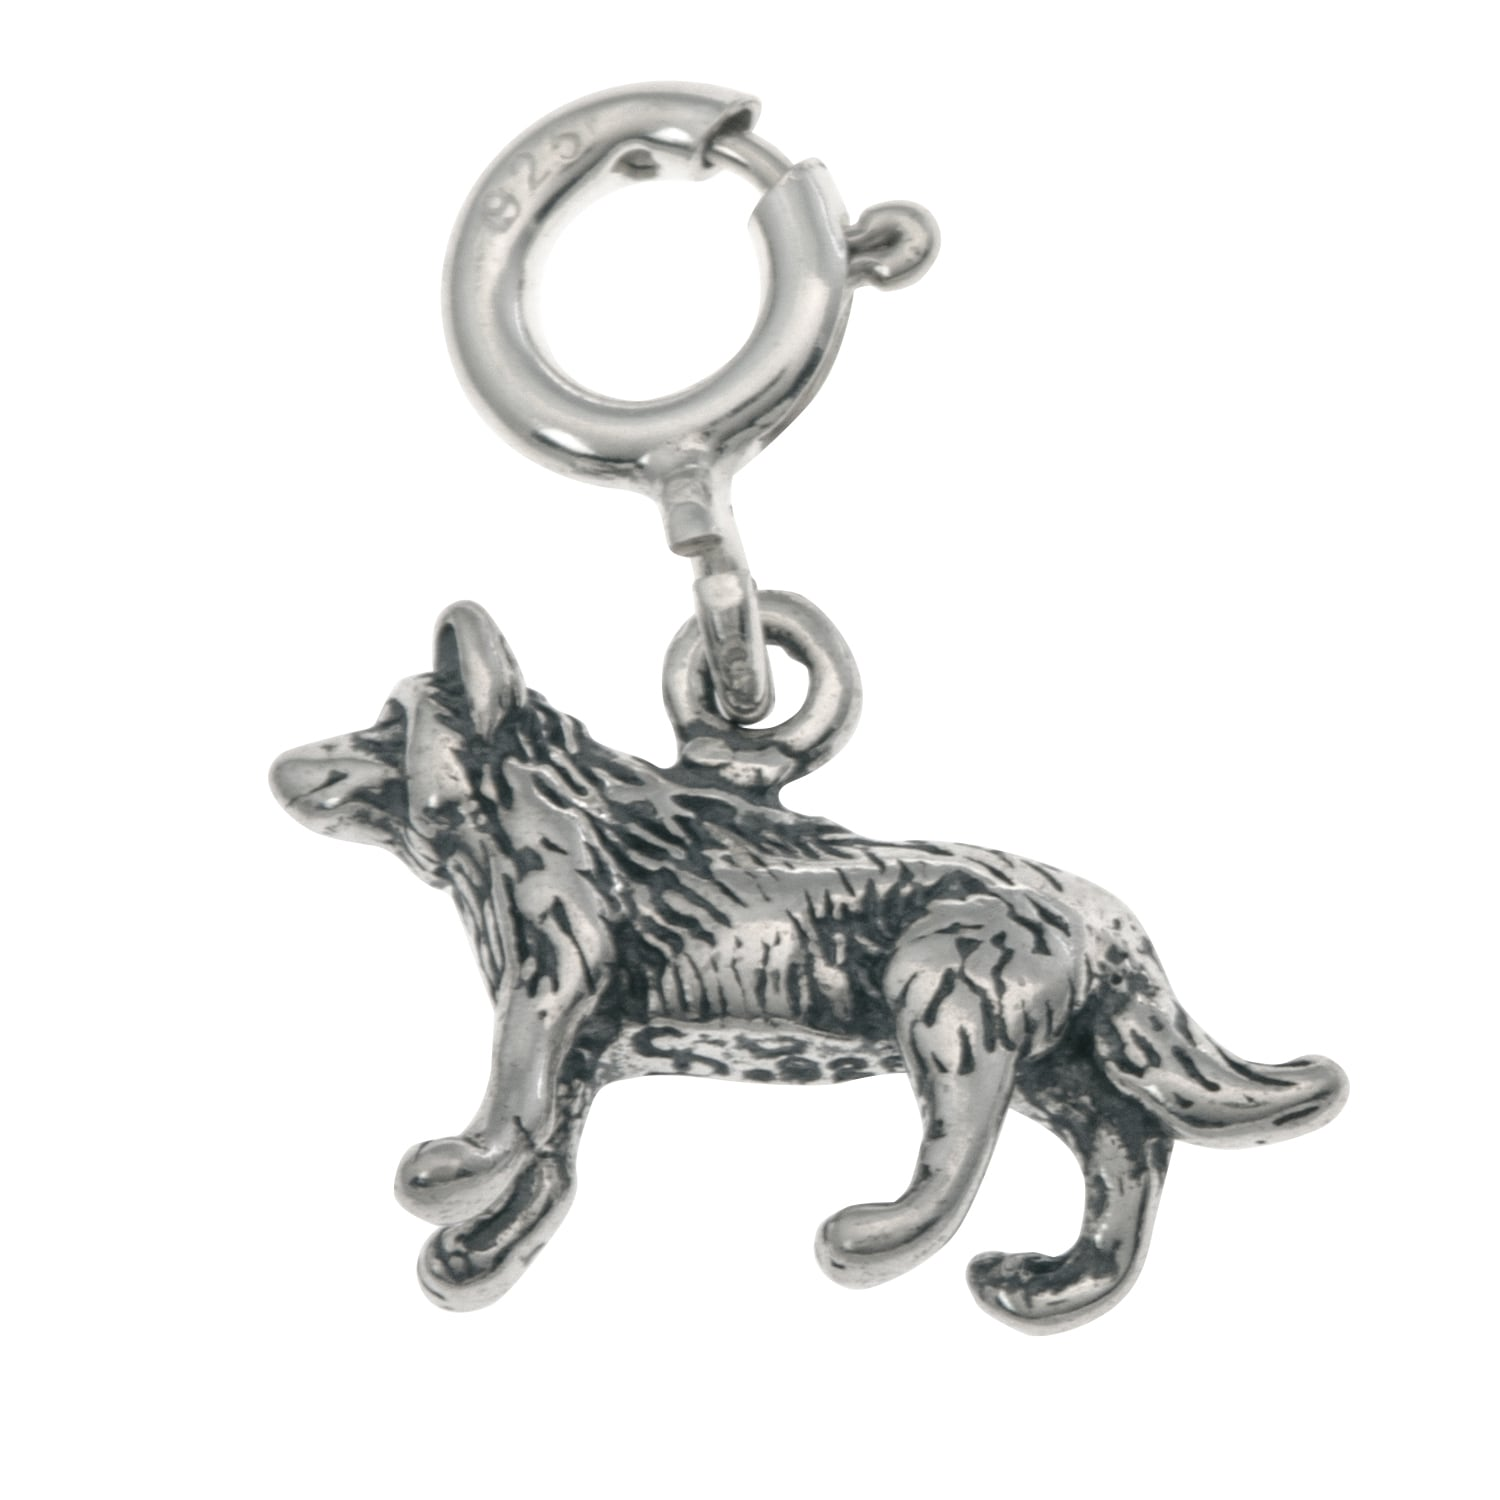 Box or Curb Chain Necklace Rembrandt Charms Sterling Silver Wombat Charm on a 16 18 or 20 inch Rope